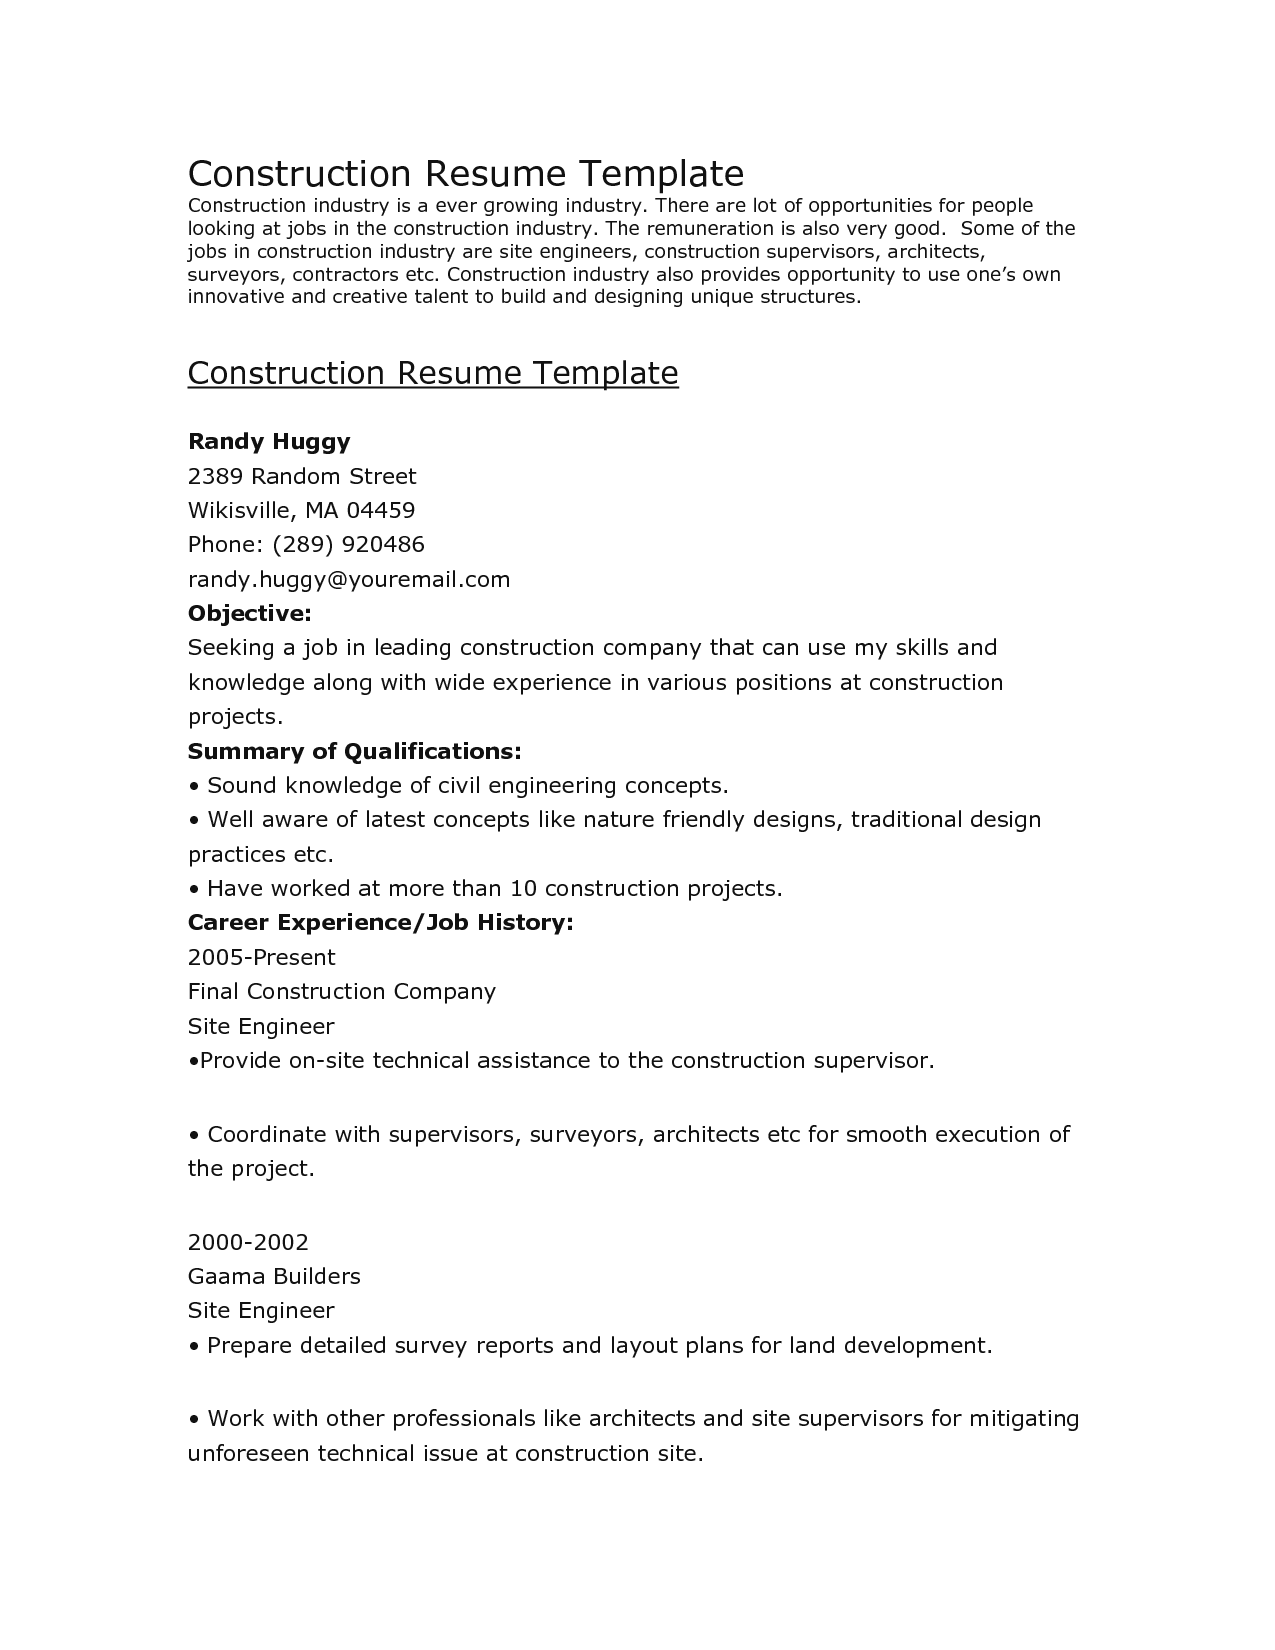 Good Objective For Resume Construction Objective Resume 0 good objective for resume|wikiresume.com